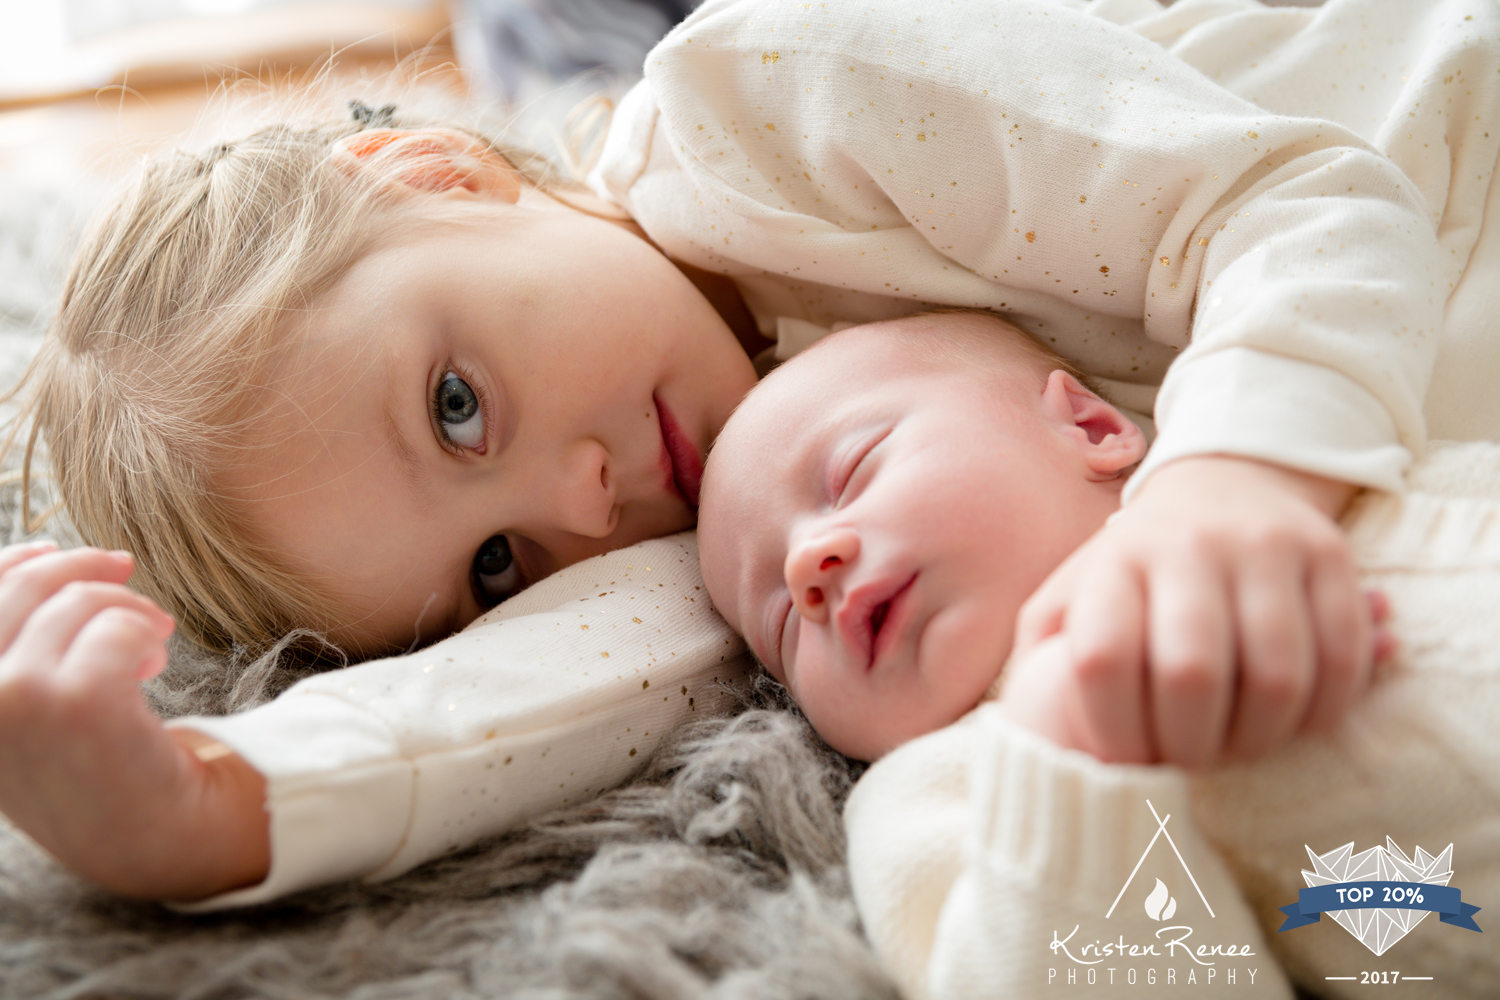 This image of Sianna and Sage scored in the top 20% for its category - Children: Babies & Toddlers!  Click here  to see more images of these beautiful children! And I just gave a print of this image to  HeartSpace Midwifery , so look for it next time you are there.